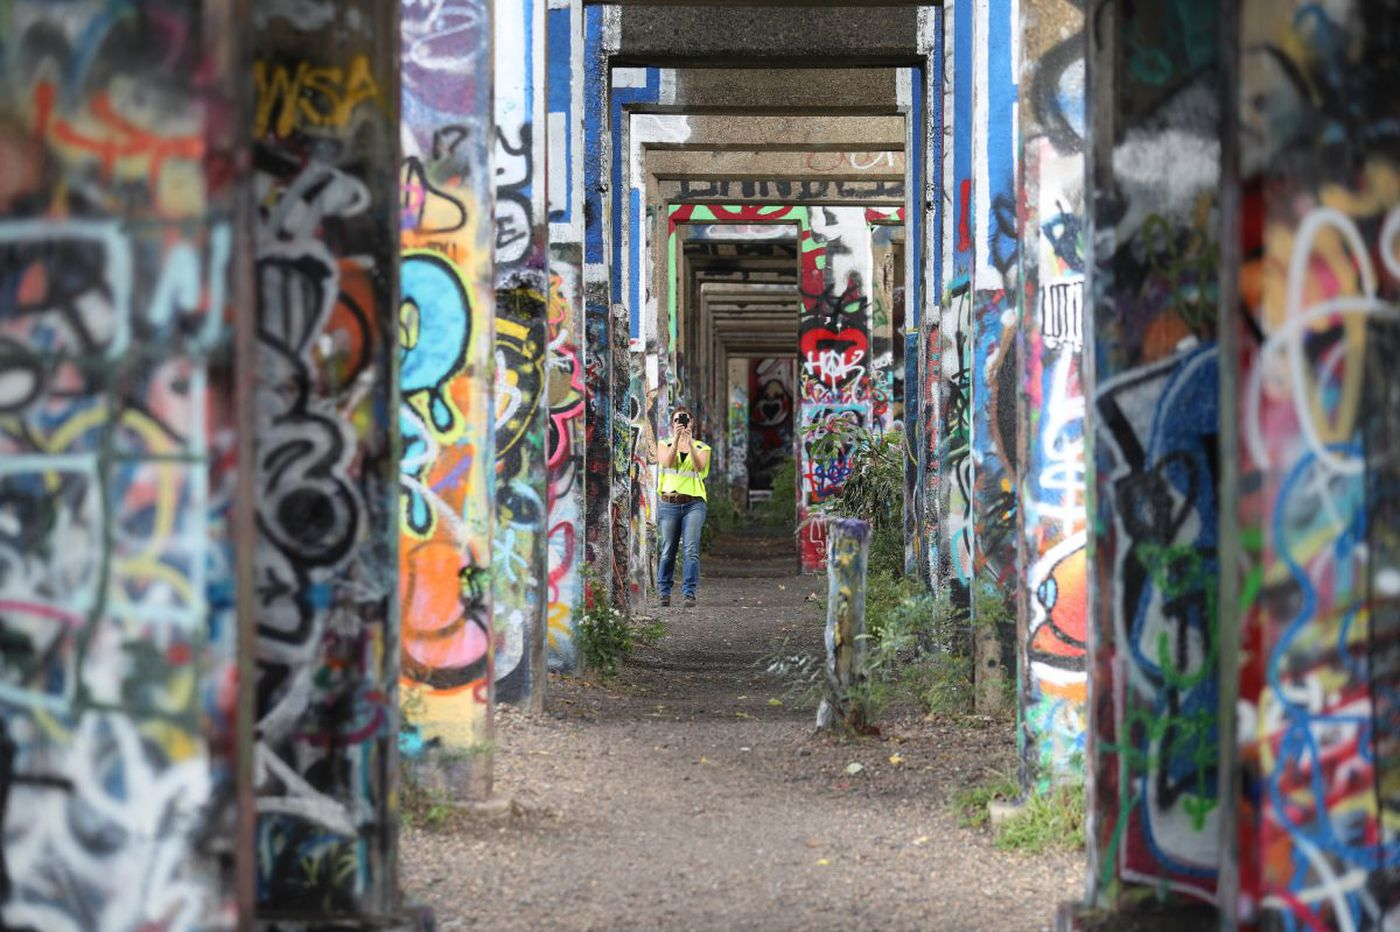 Philly police shut down Graffiti Pier, citing safety concerns